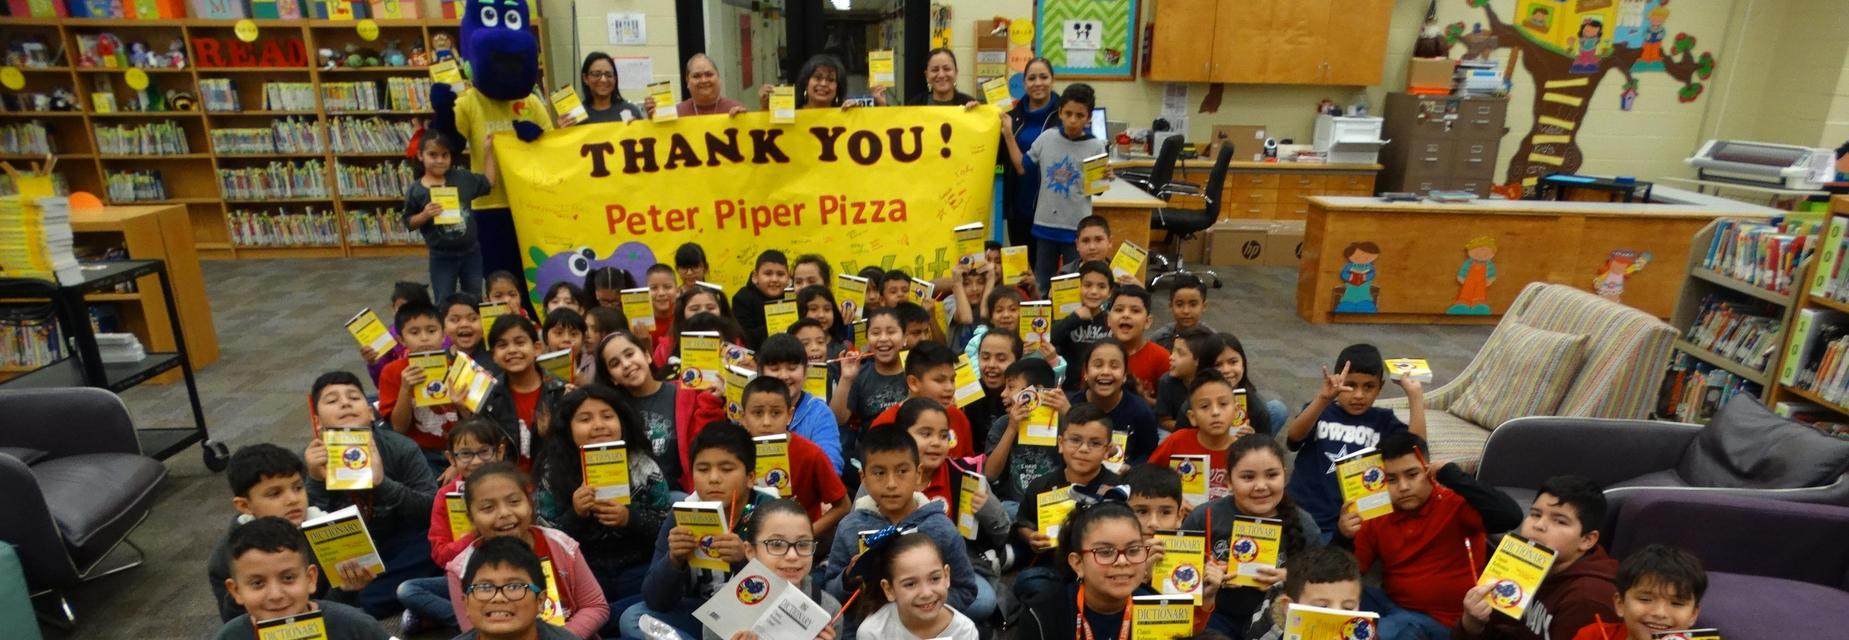 Peter Piper Pizza gifts dictionaries to 3rd graders